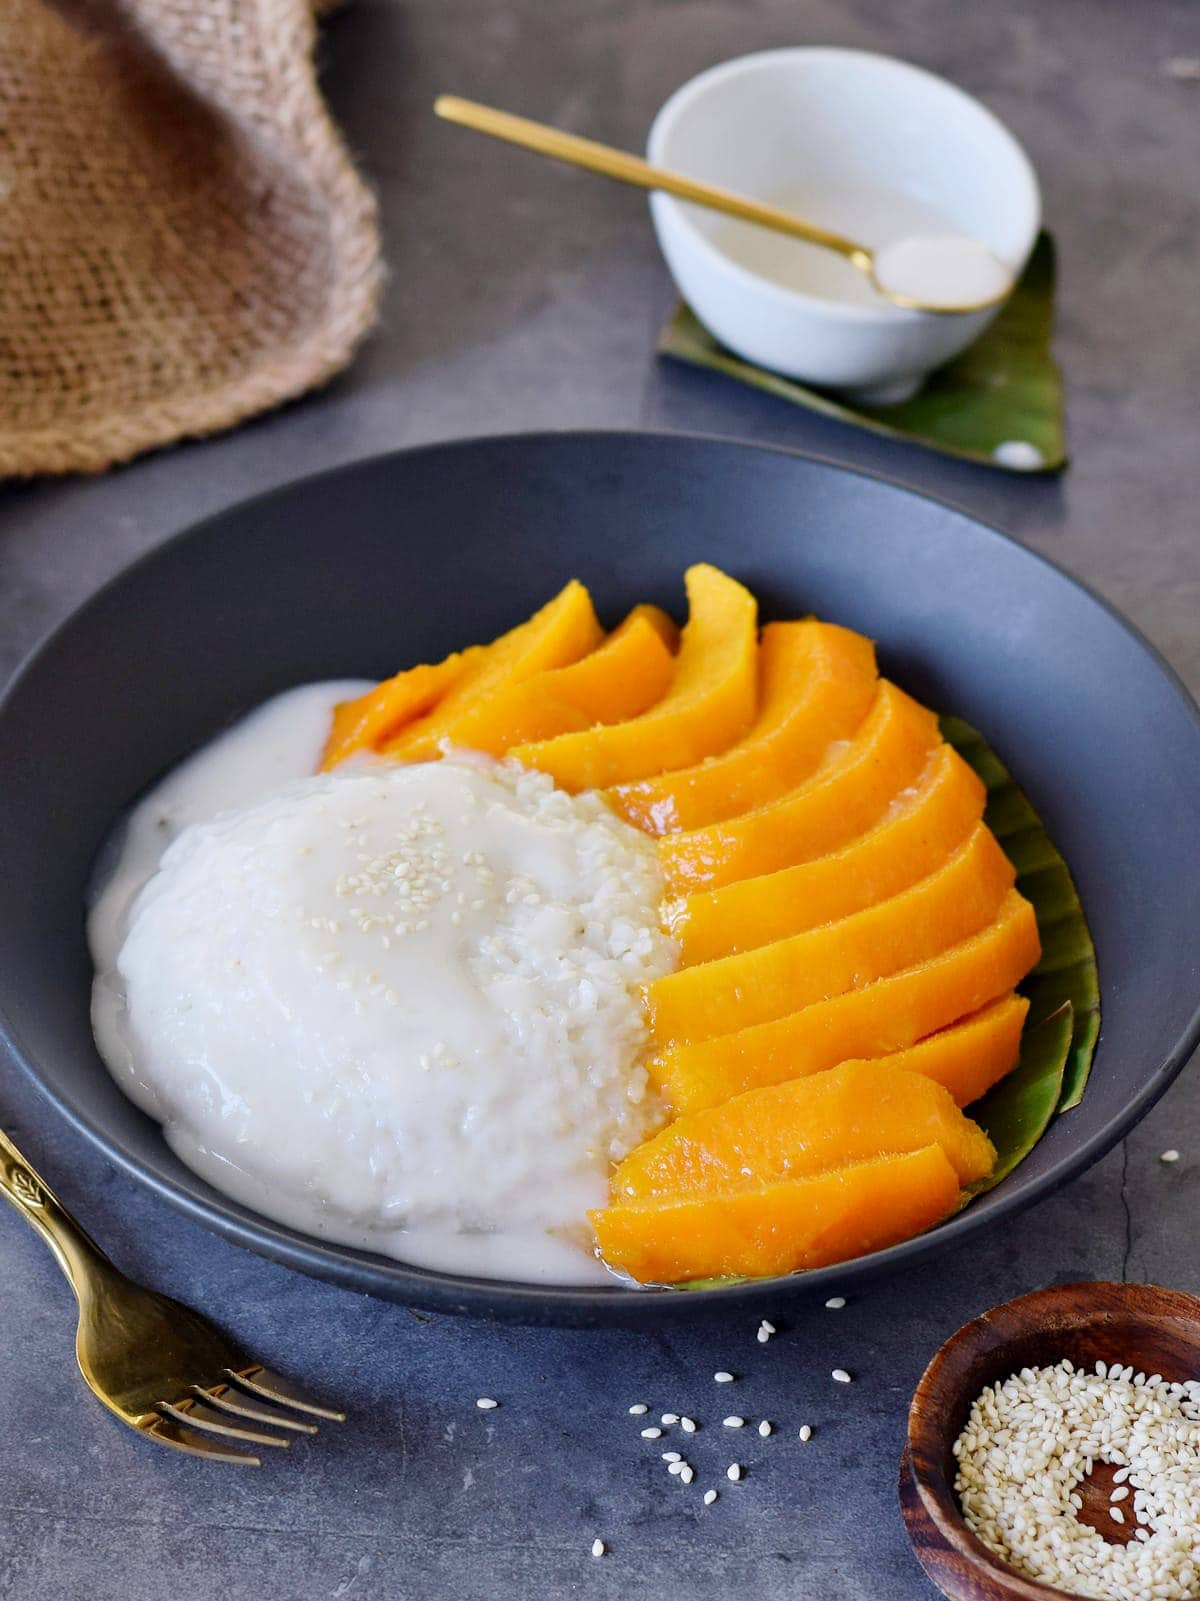 Glutinous rice with sliced mangoes in black bowl